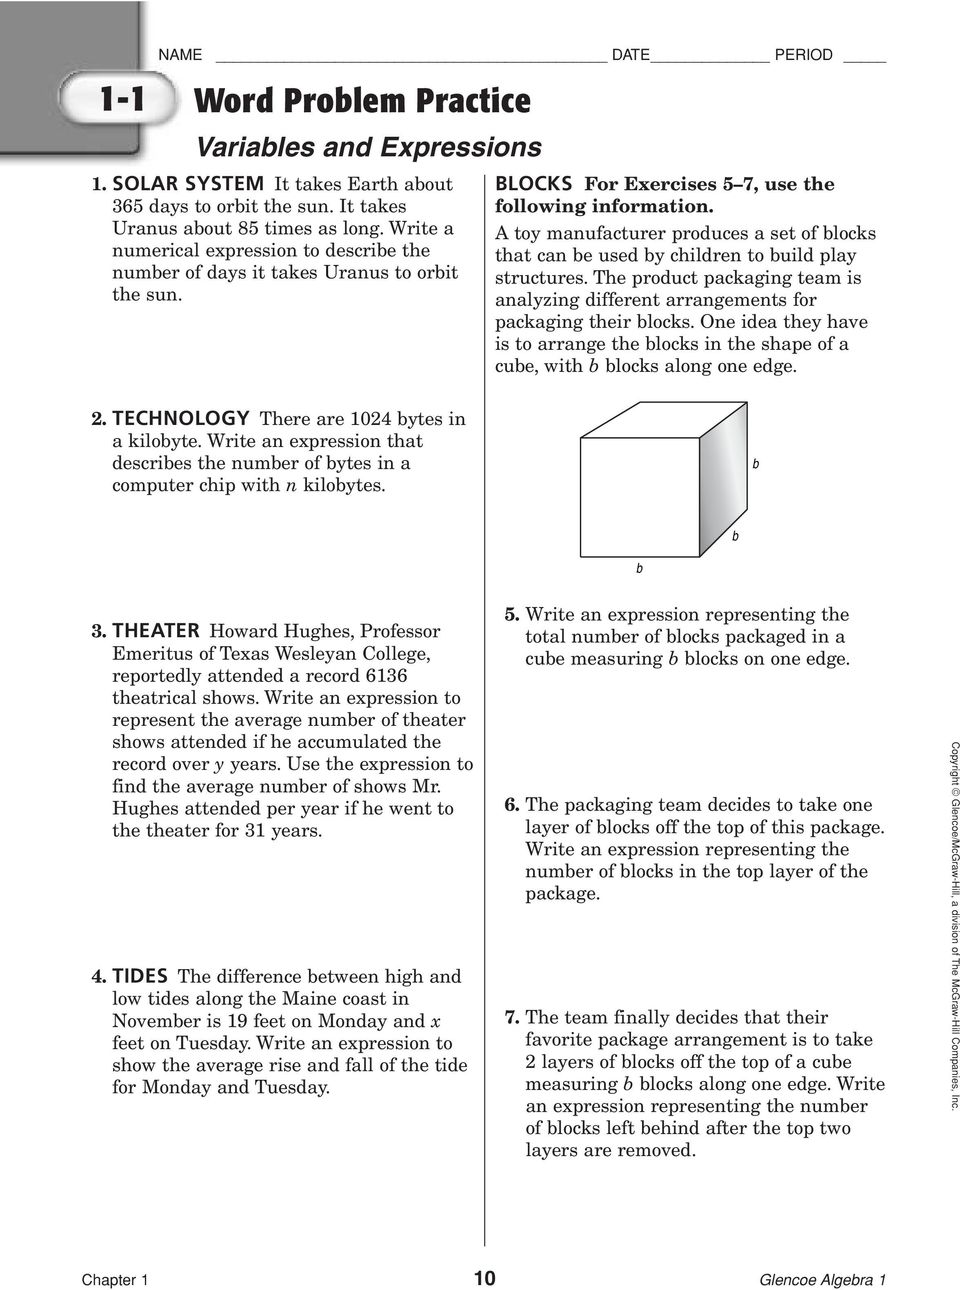 Worksheets Glencoe/mcgraw-hill Word Problem Practice Answers solving equations with variables on both sides worksheet answers 2 1 word problem practice and expressions